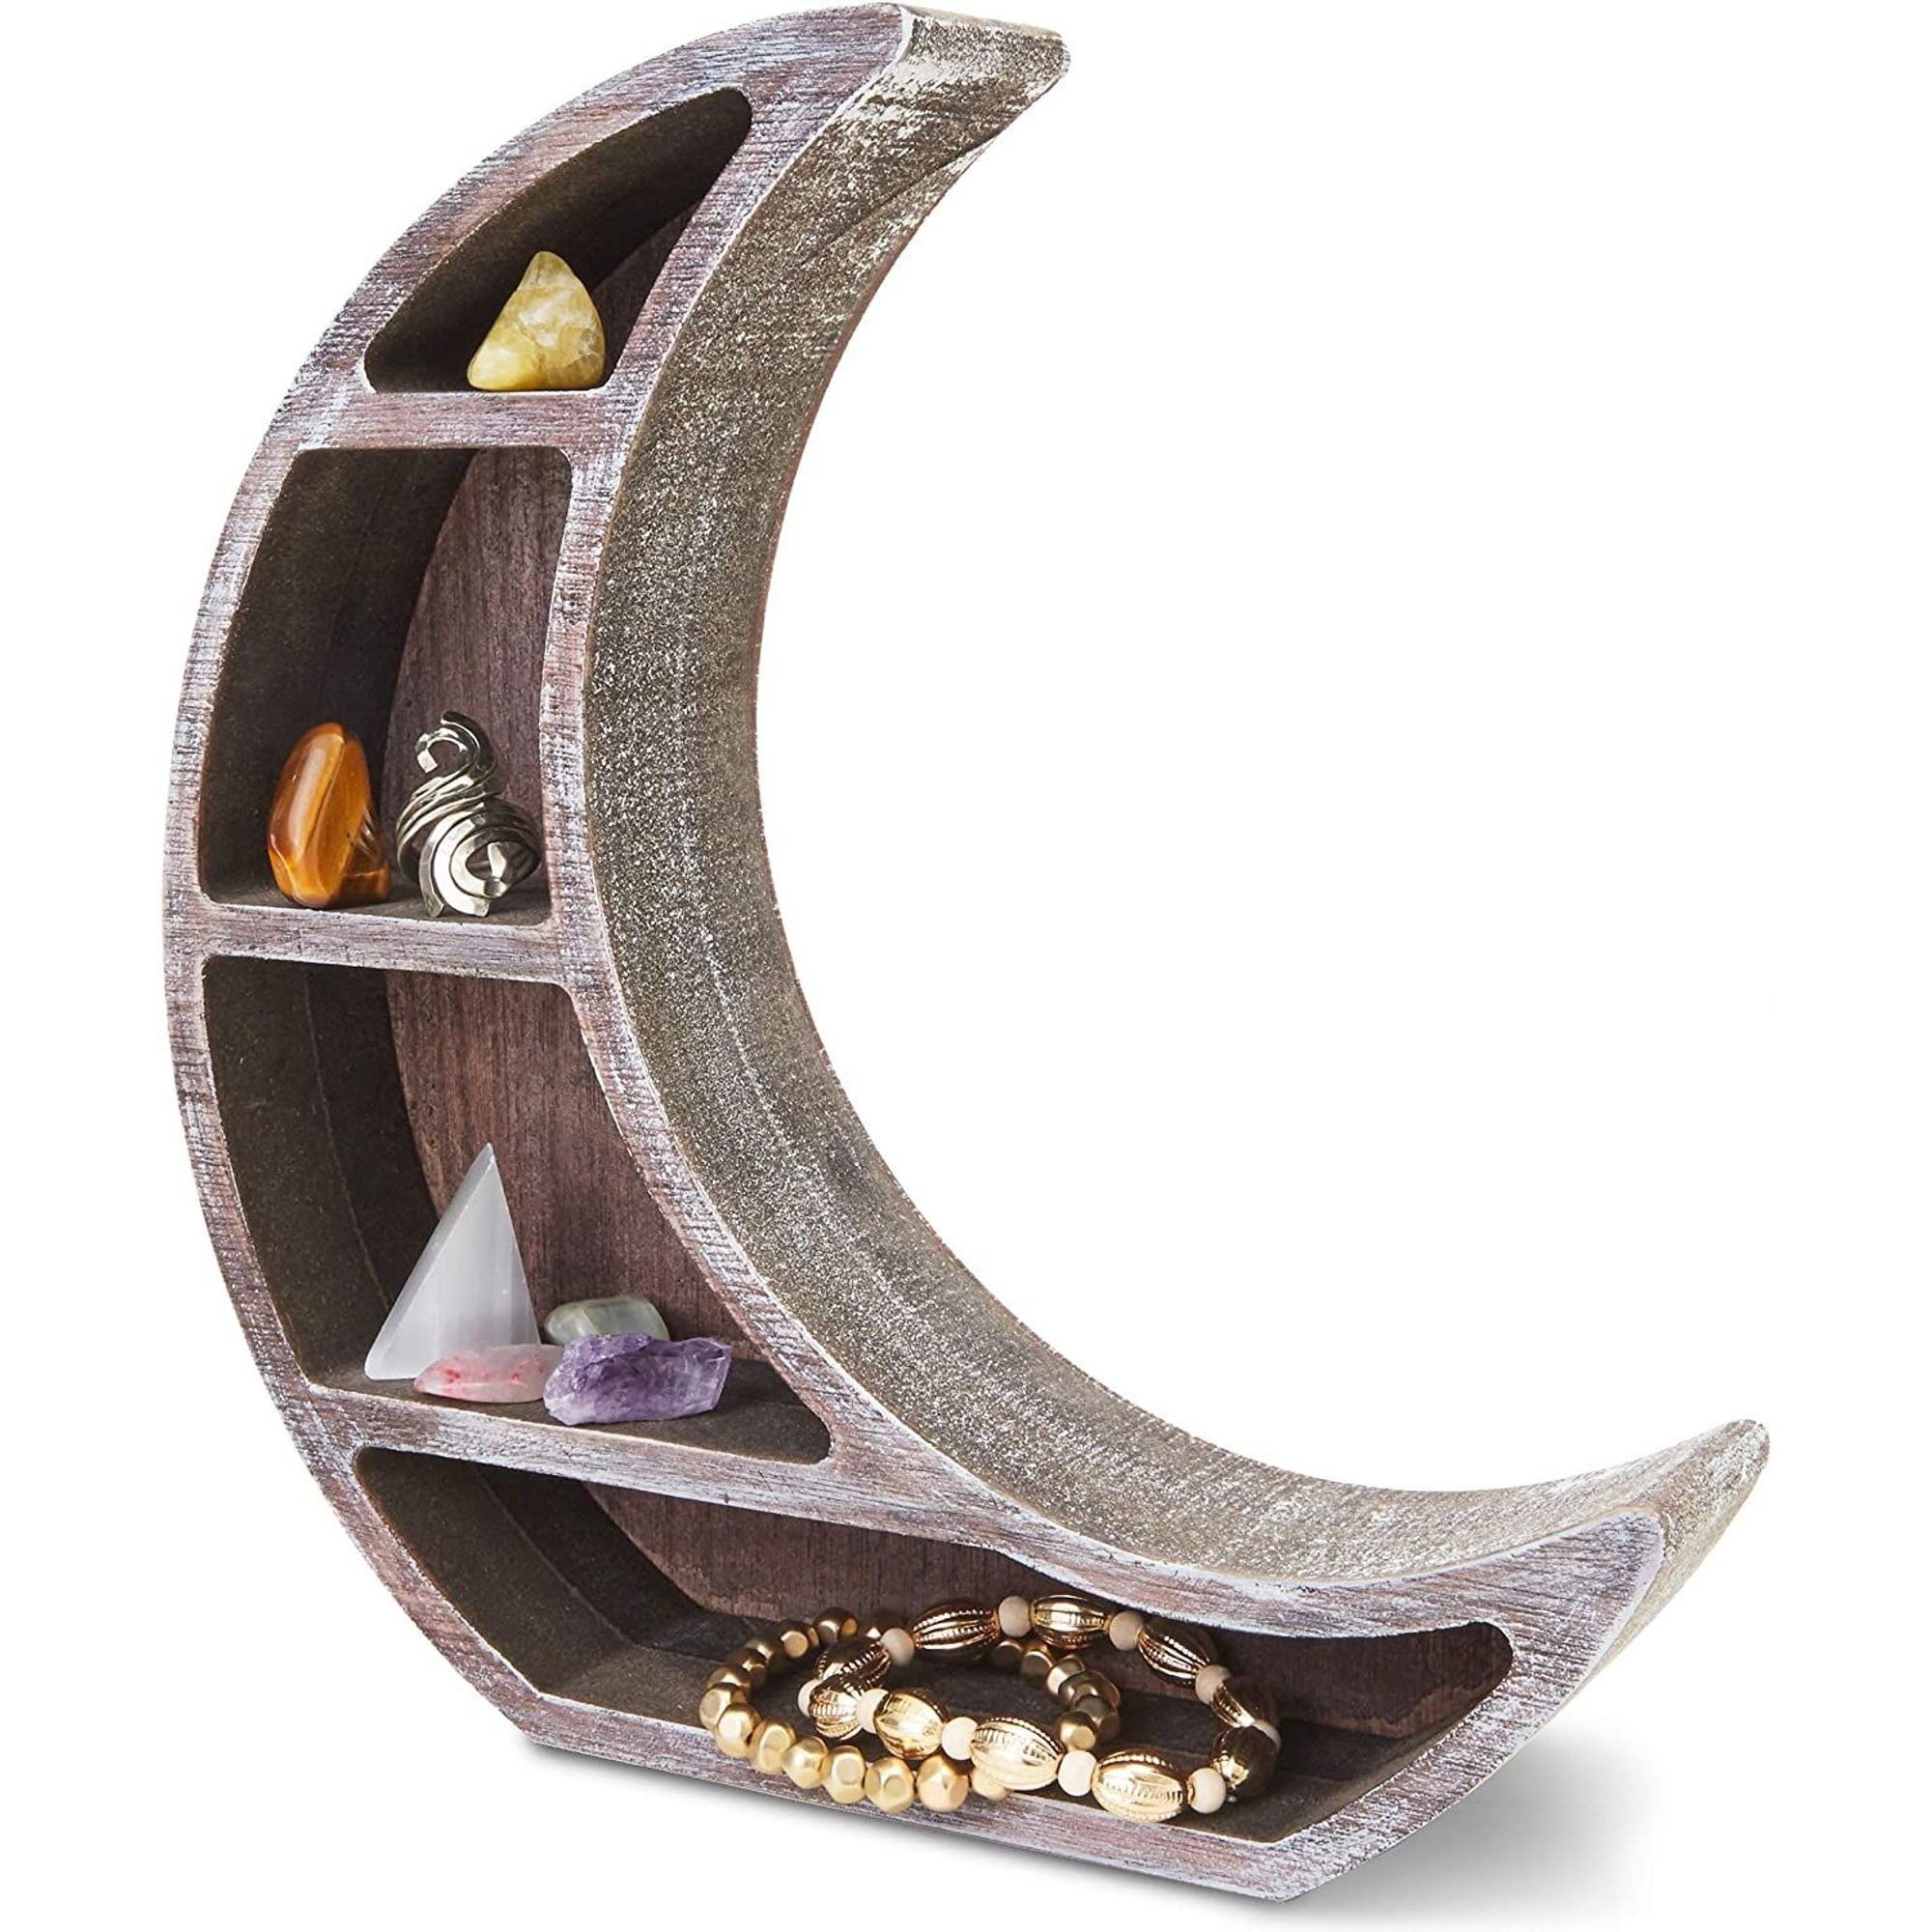 Wall Mounted Crescent Moon Shelf Wooden Floating Storage Display Shelves Home Wall Room Decor Brown 10 X 10 2 X2 Walmart Com Walmart Com